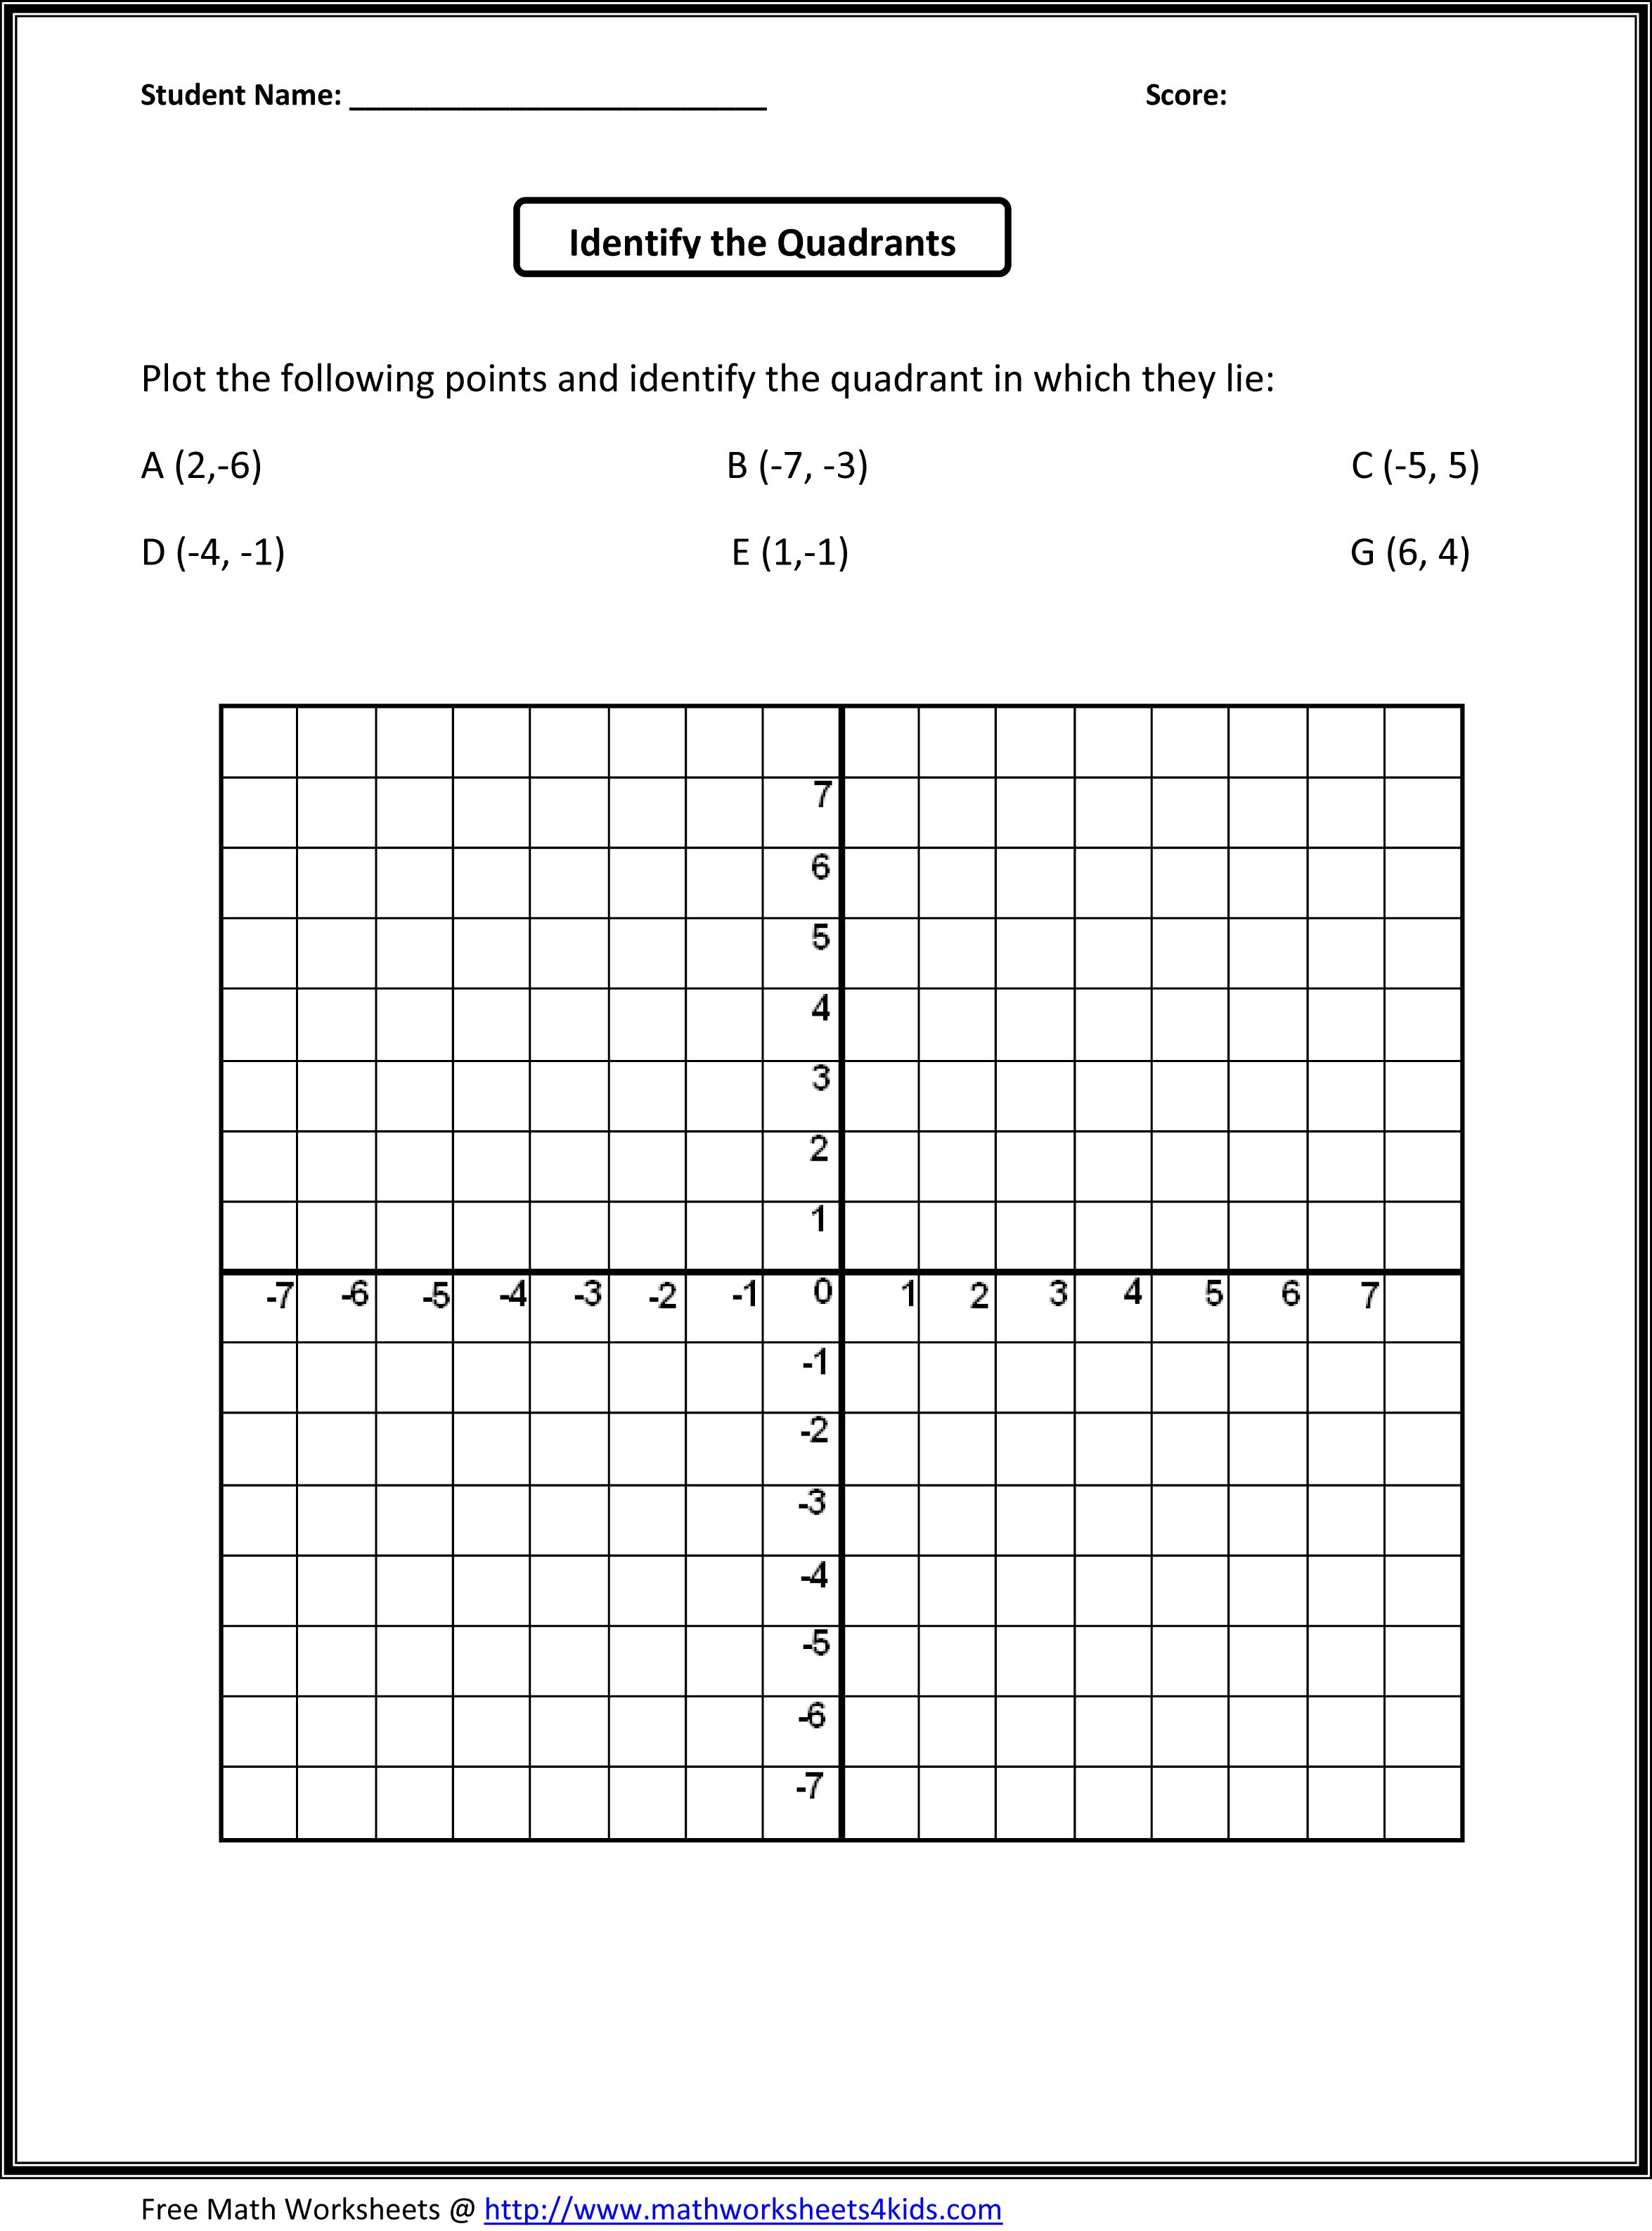 5th Grade Math Worksheet School Pinterest